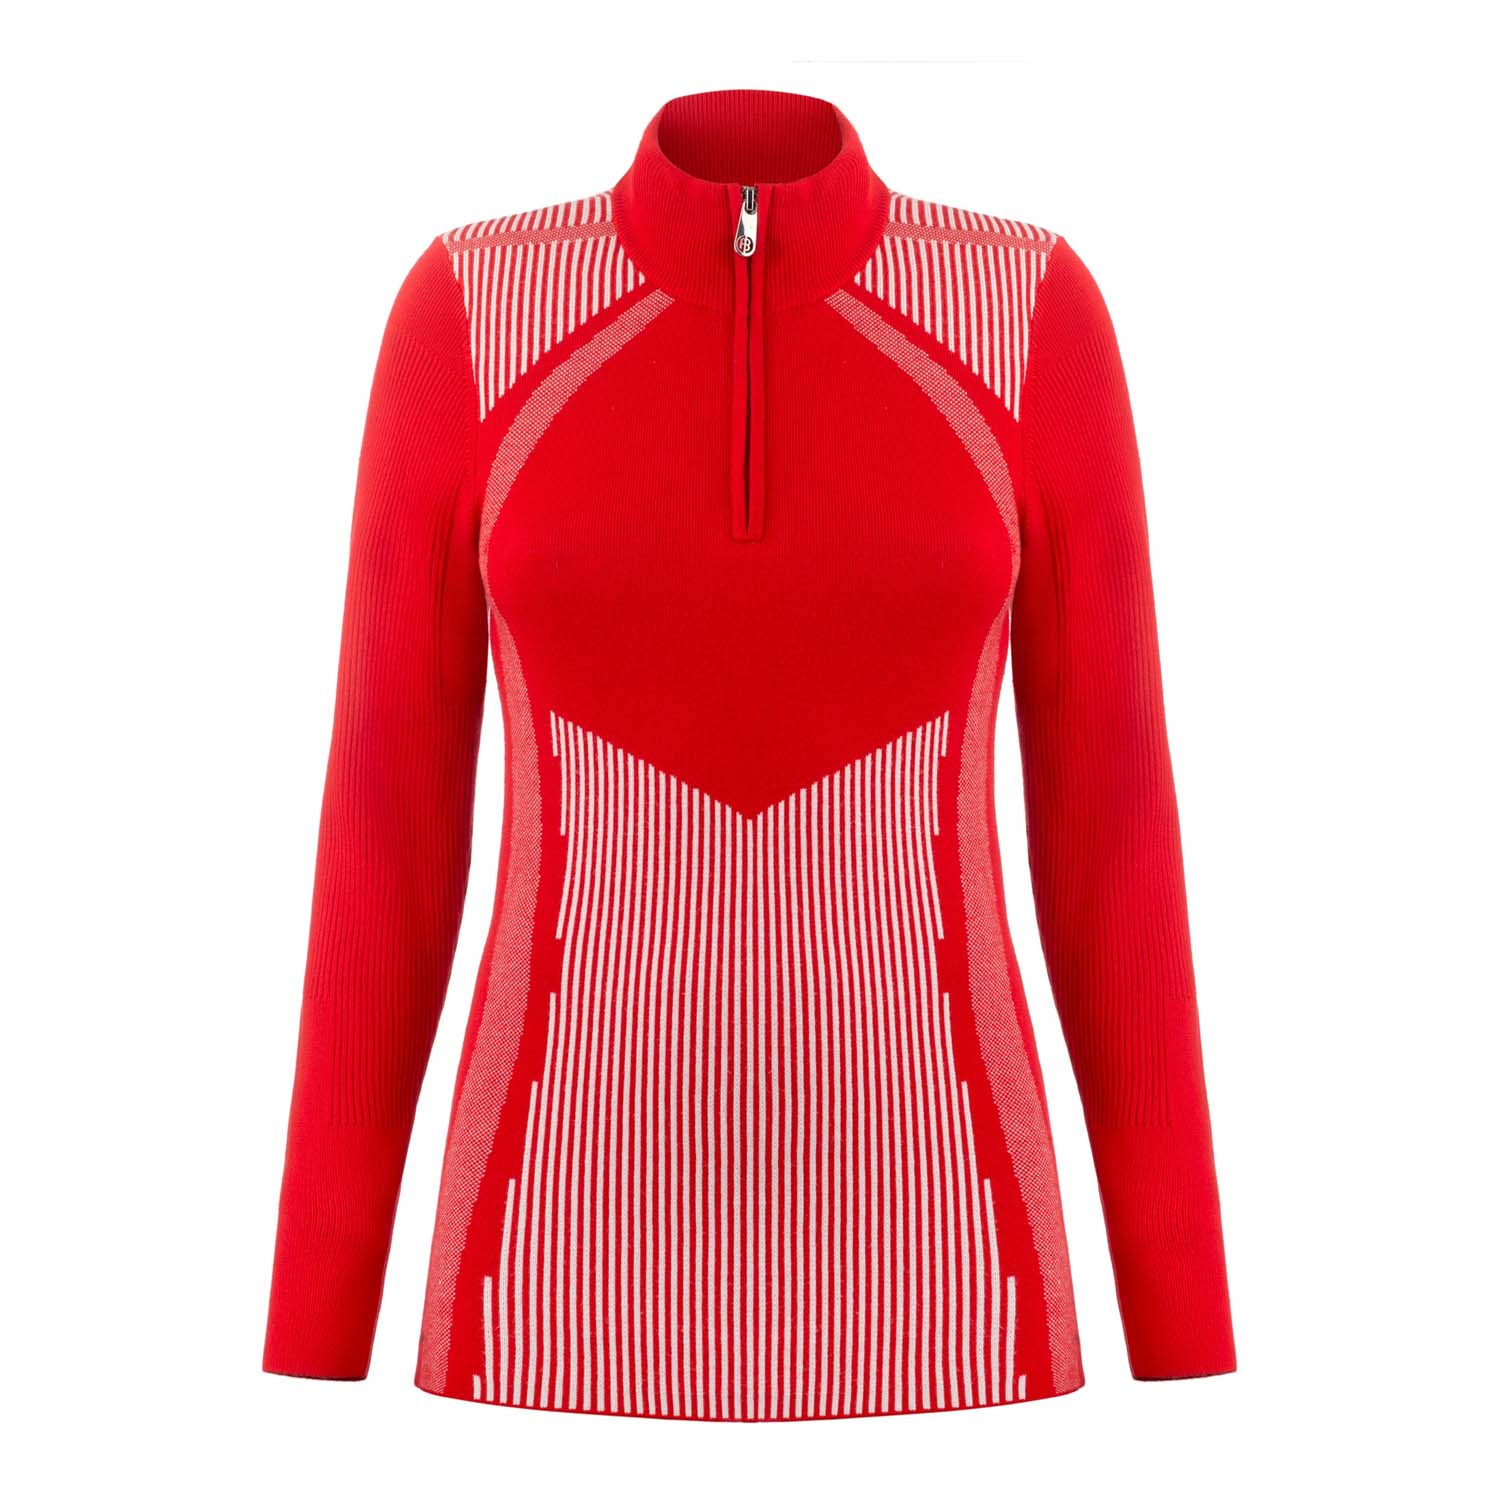 Poivre Blanc Knit Sweater Scarlet Red/White 2020